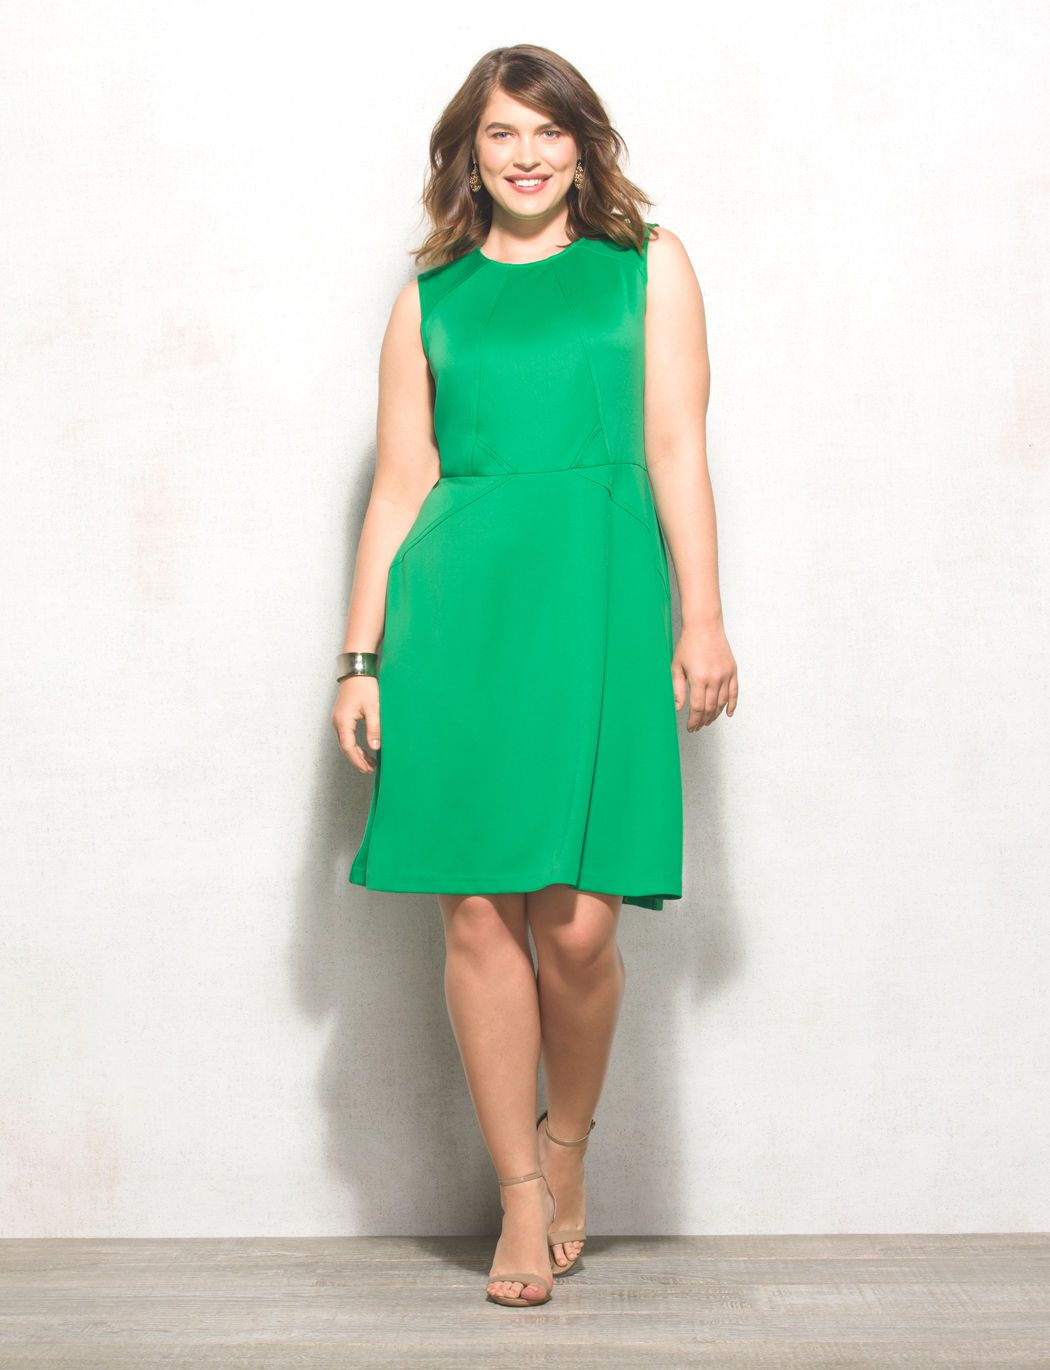 Green dress one shoulder  How to pull off a vibrant dress Youure looking at it Eyecatching